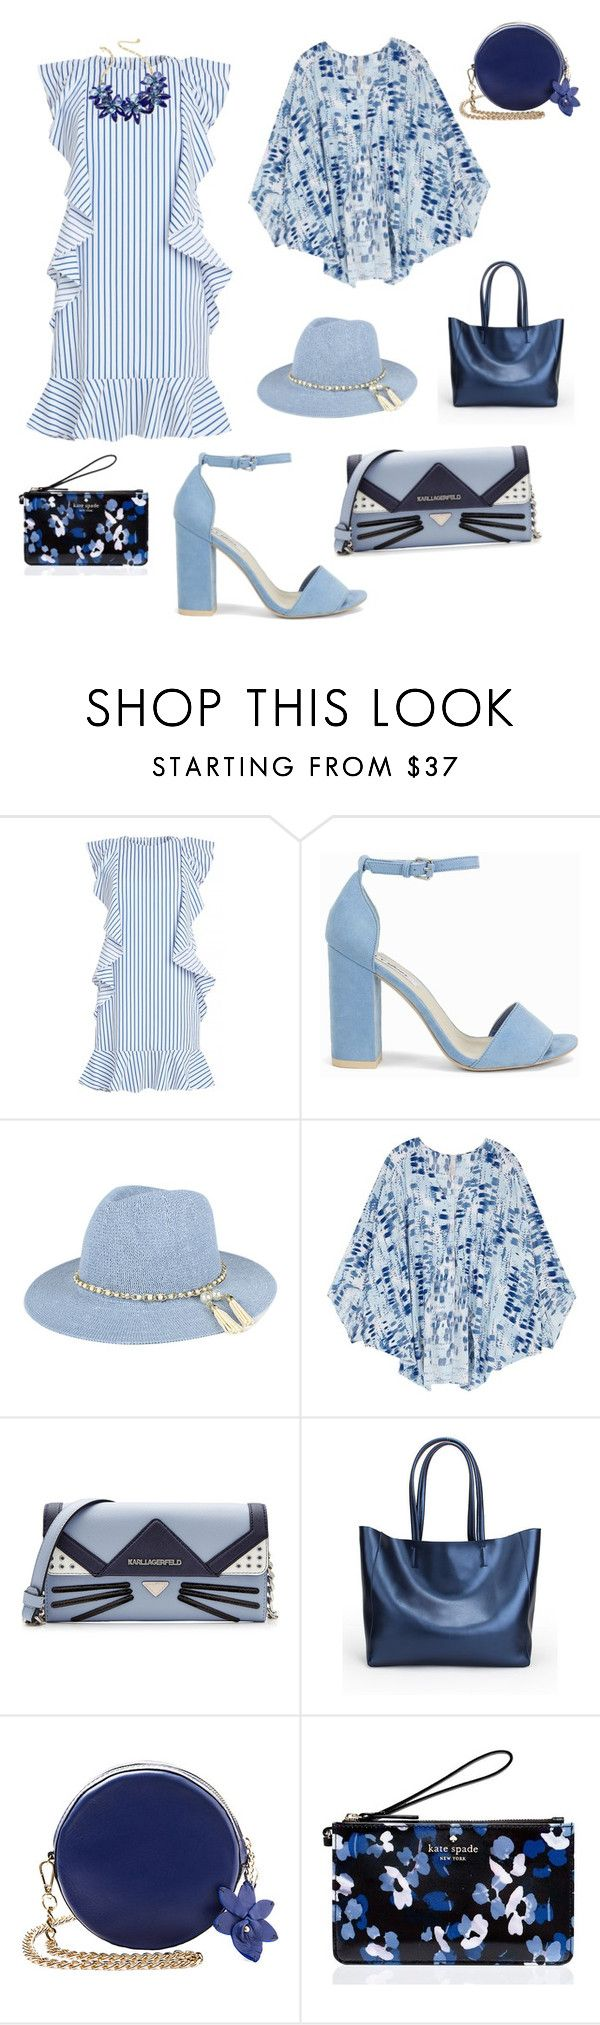 """Moreblue"" by daniellemercy ❤ liked on Polyvore featuring Nly Shoes, Melissa McCarthy Seven7, Karl Lagerfeld, Kate Spade and plus size clothing"